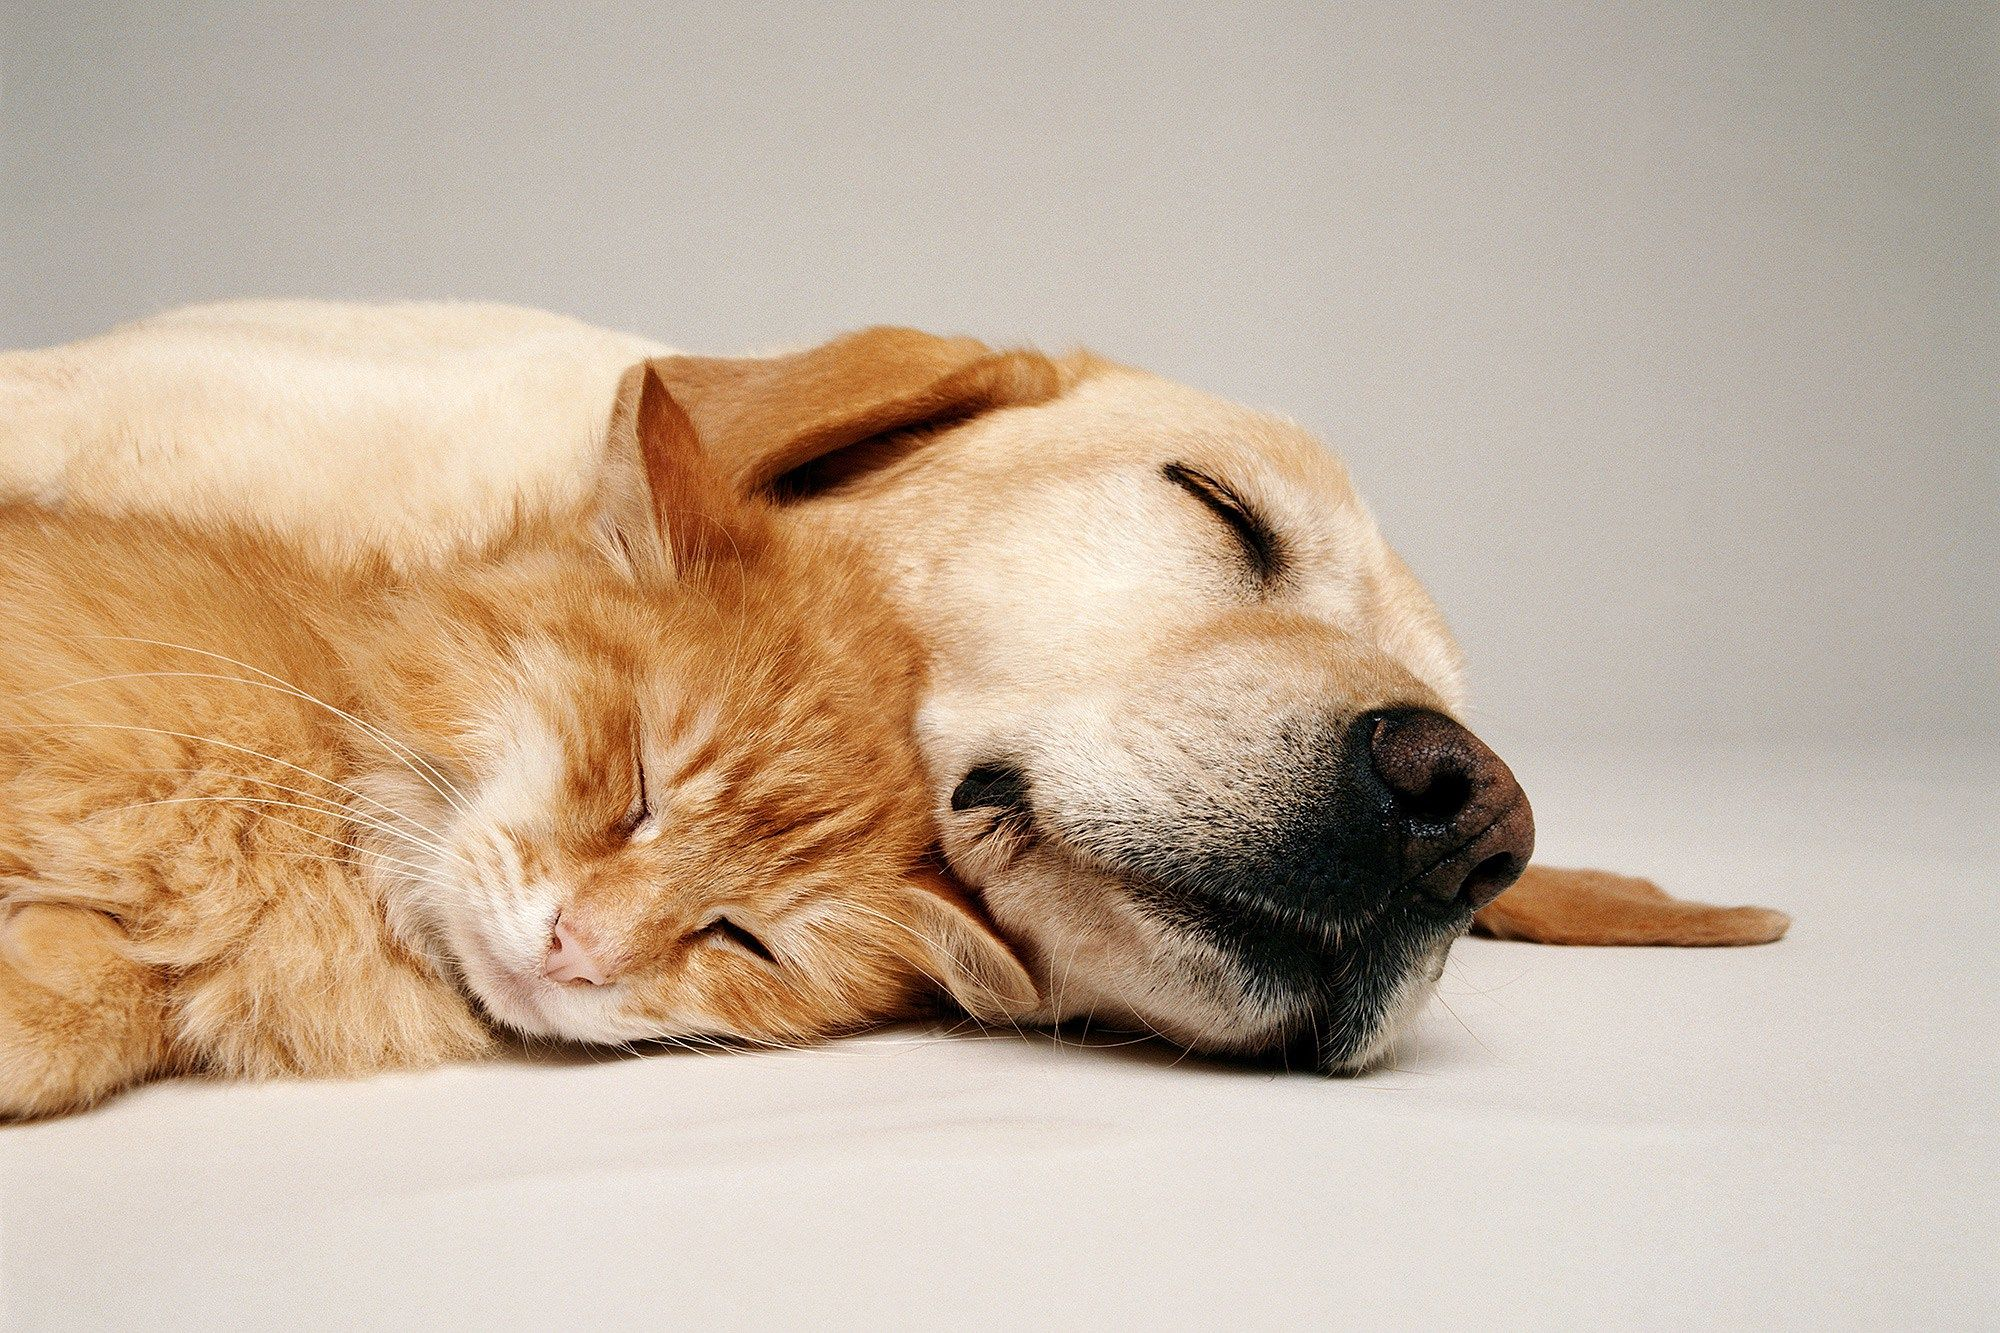 What Is Your Cat or Dog Dreaming About? A Harvard Expert Has Some Answers